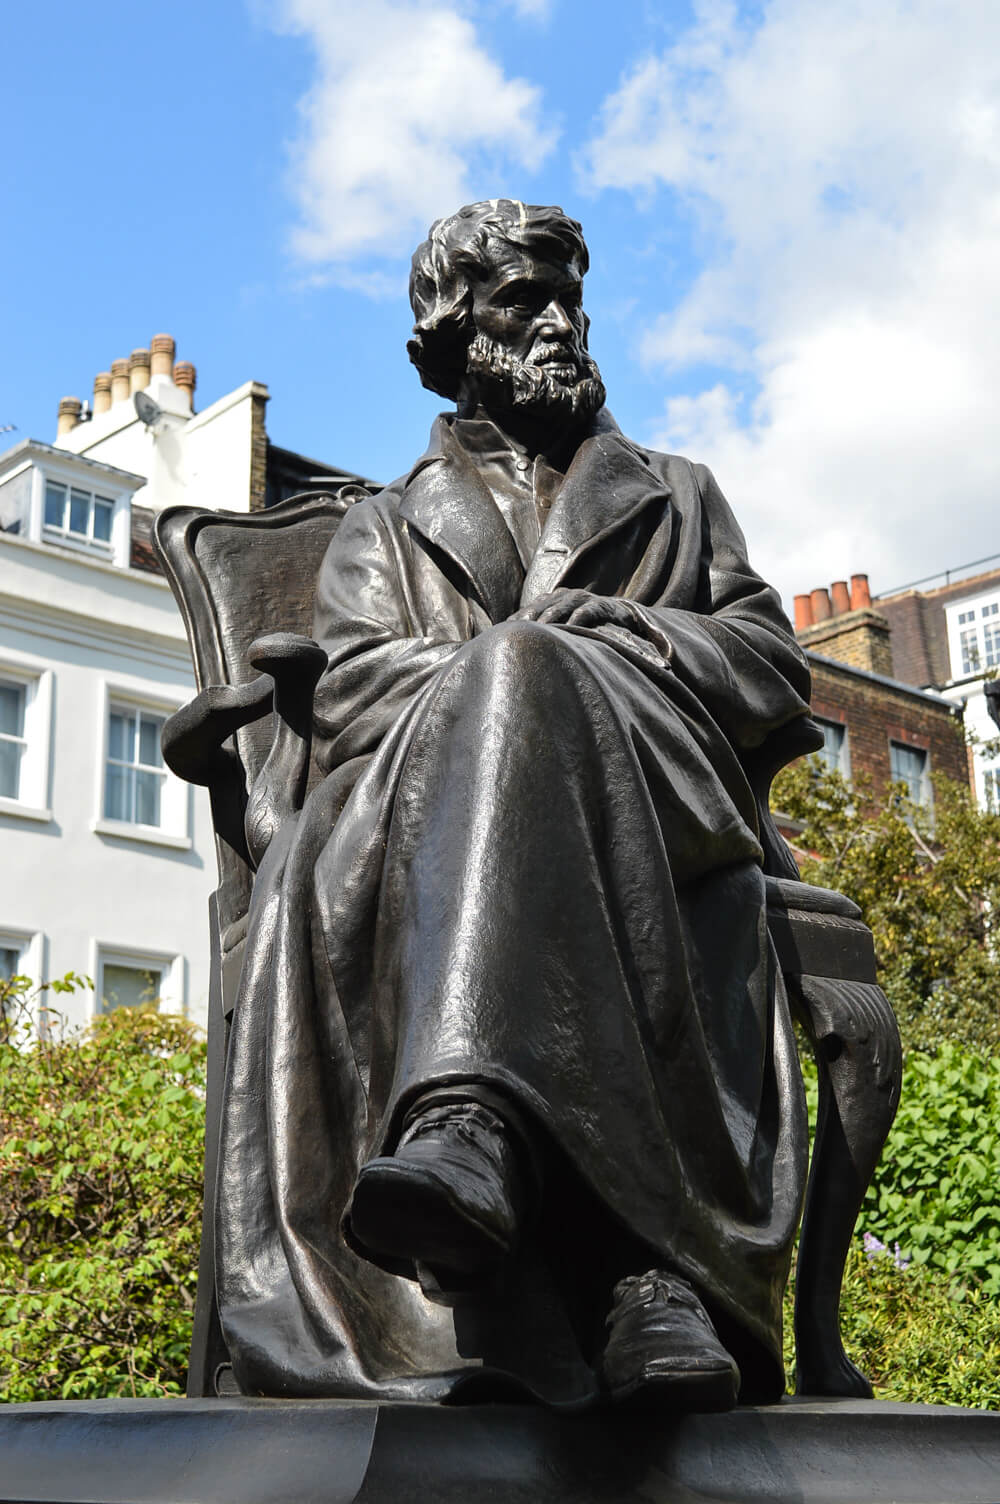 Statue at Carlyle's House, Chelsea, London